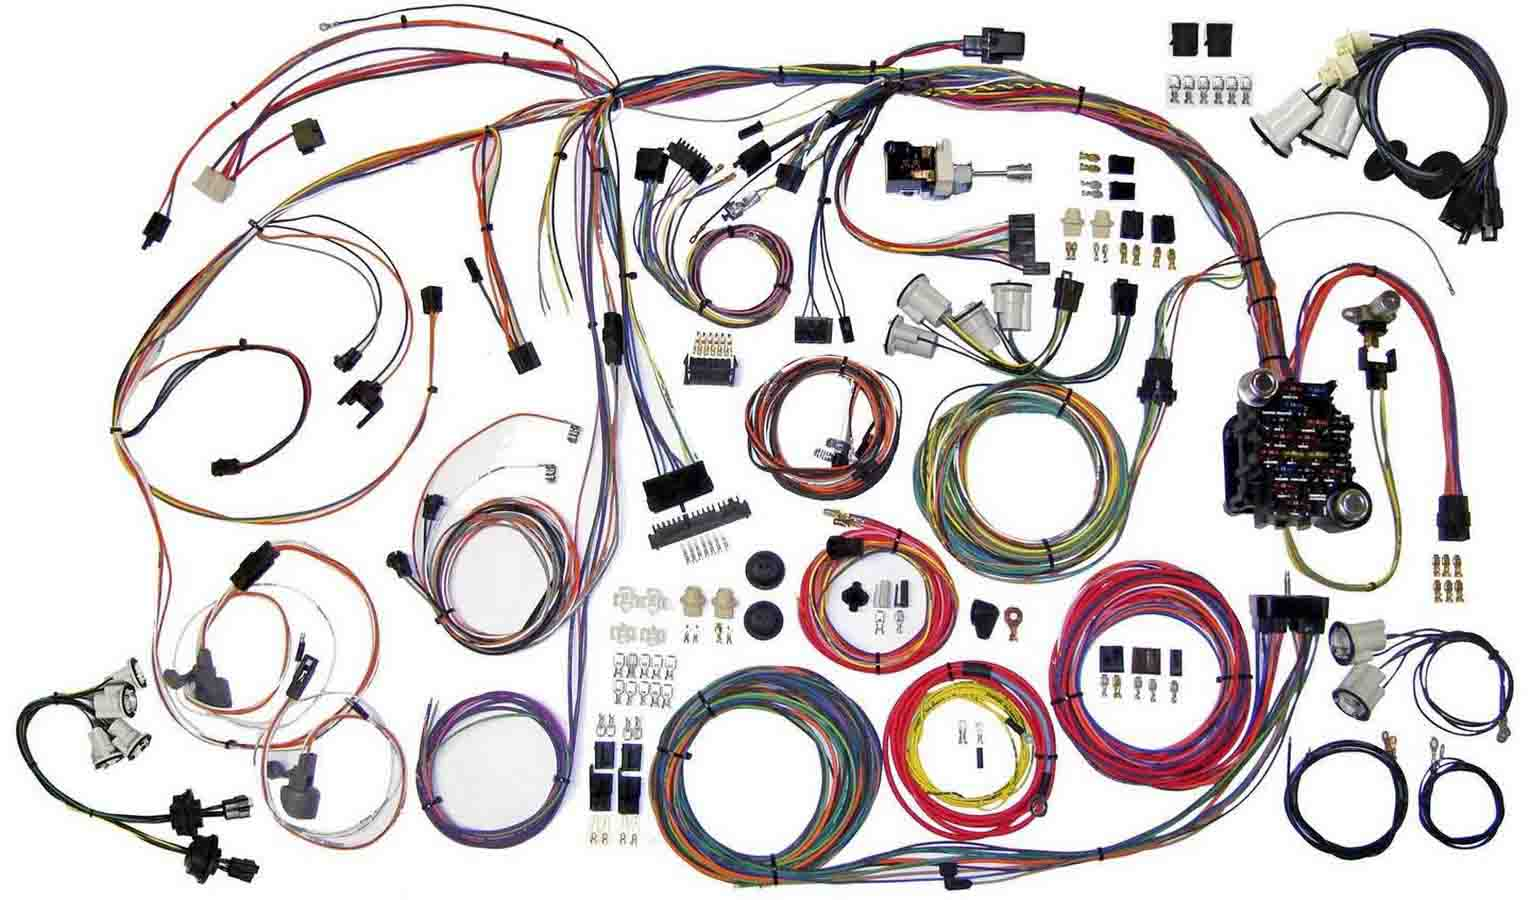 aaw 510336 1 search results etheridge race parts aaw wiring harness at aneh.co